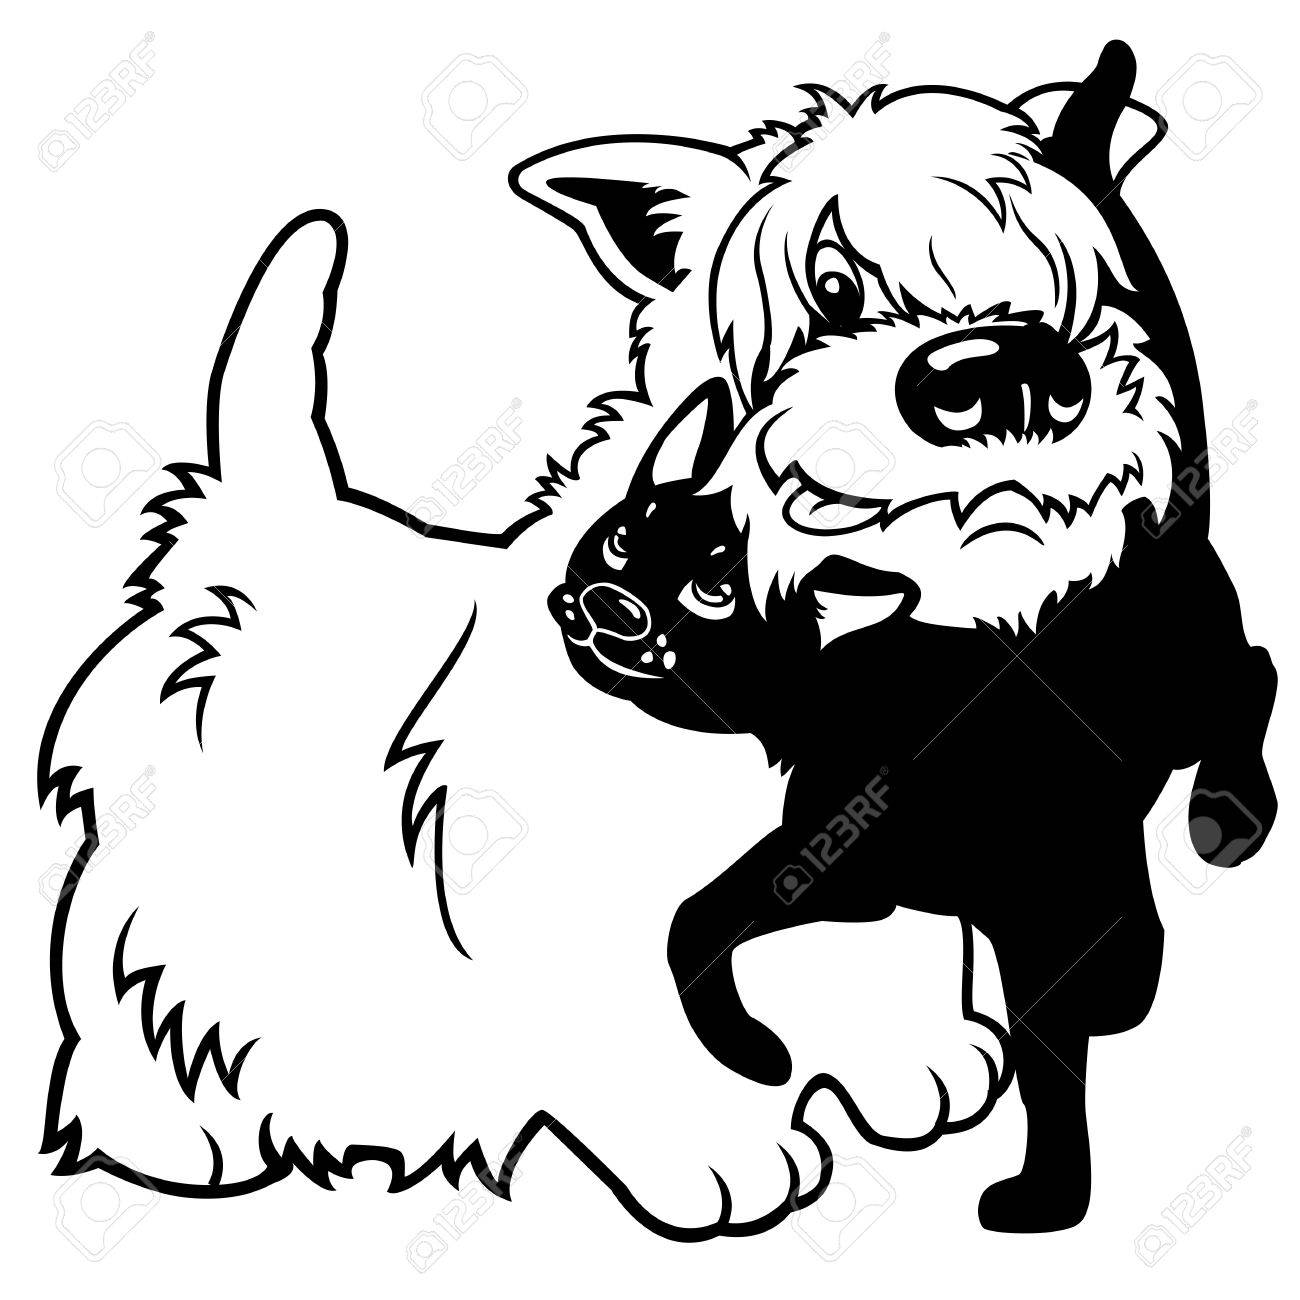 1300x1300 West Highland White Terrier Dog And Black Cat,isolated Cartoon